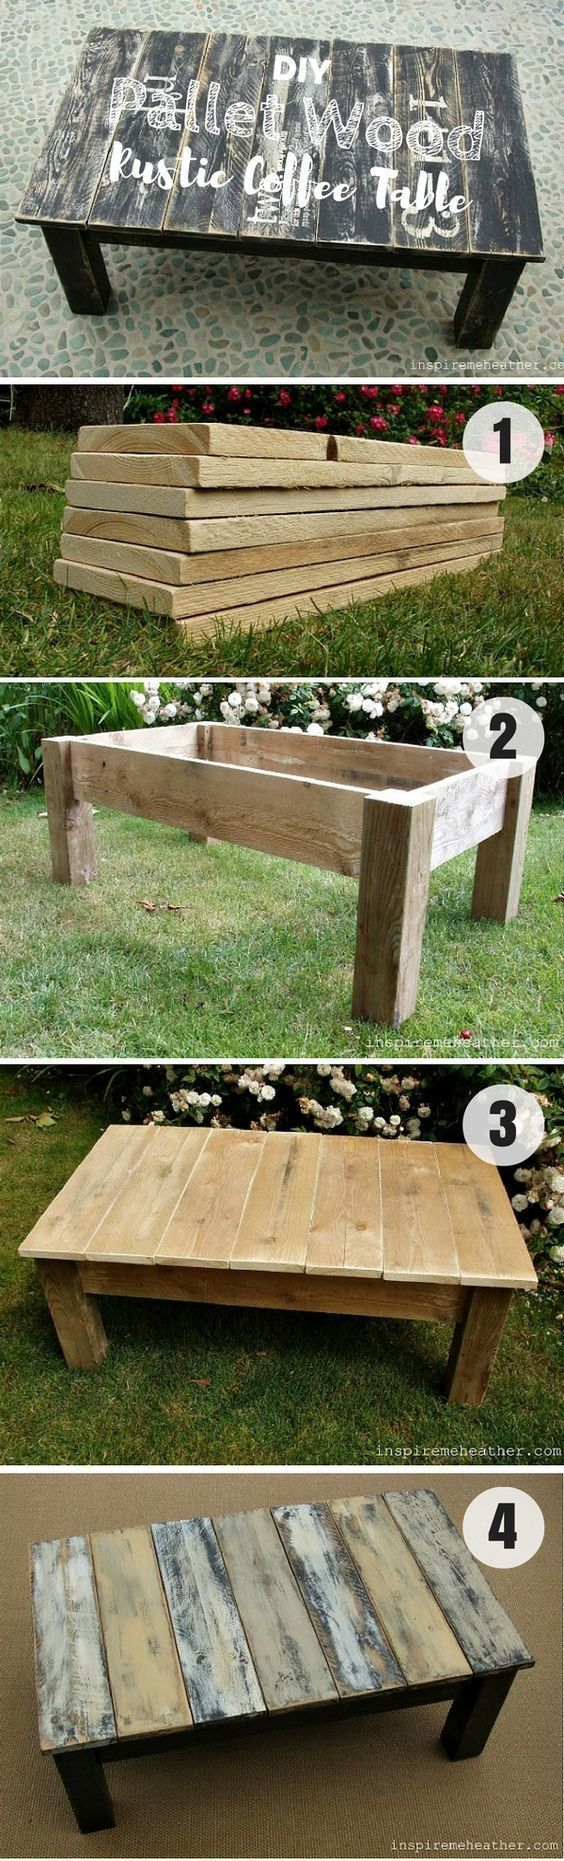 Check how to build this easy DIY